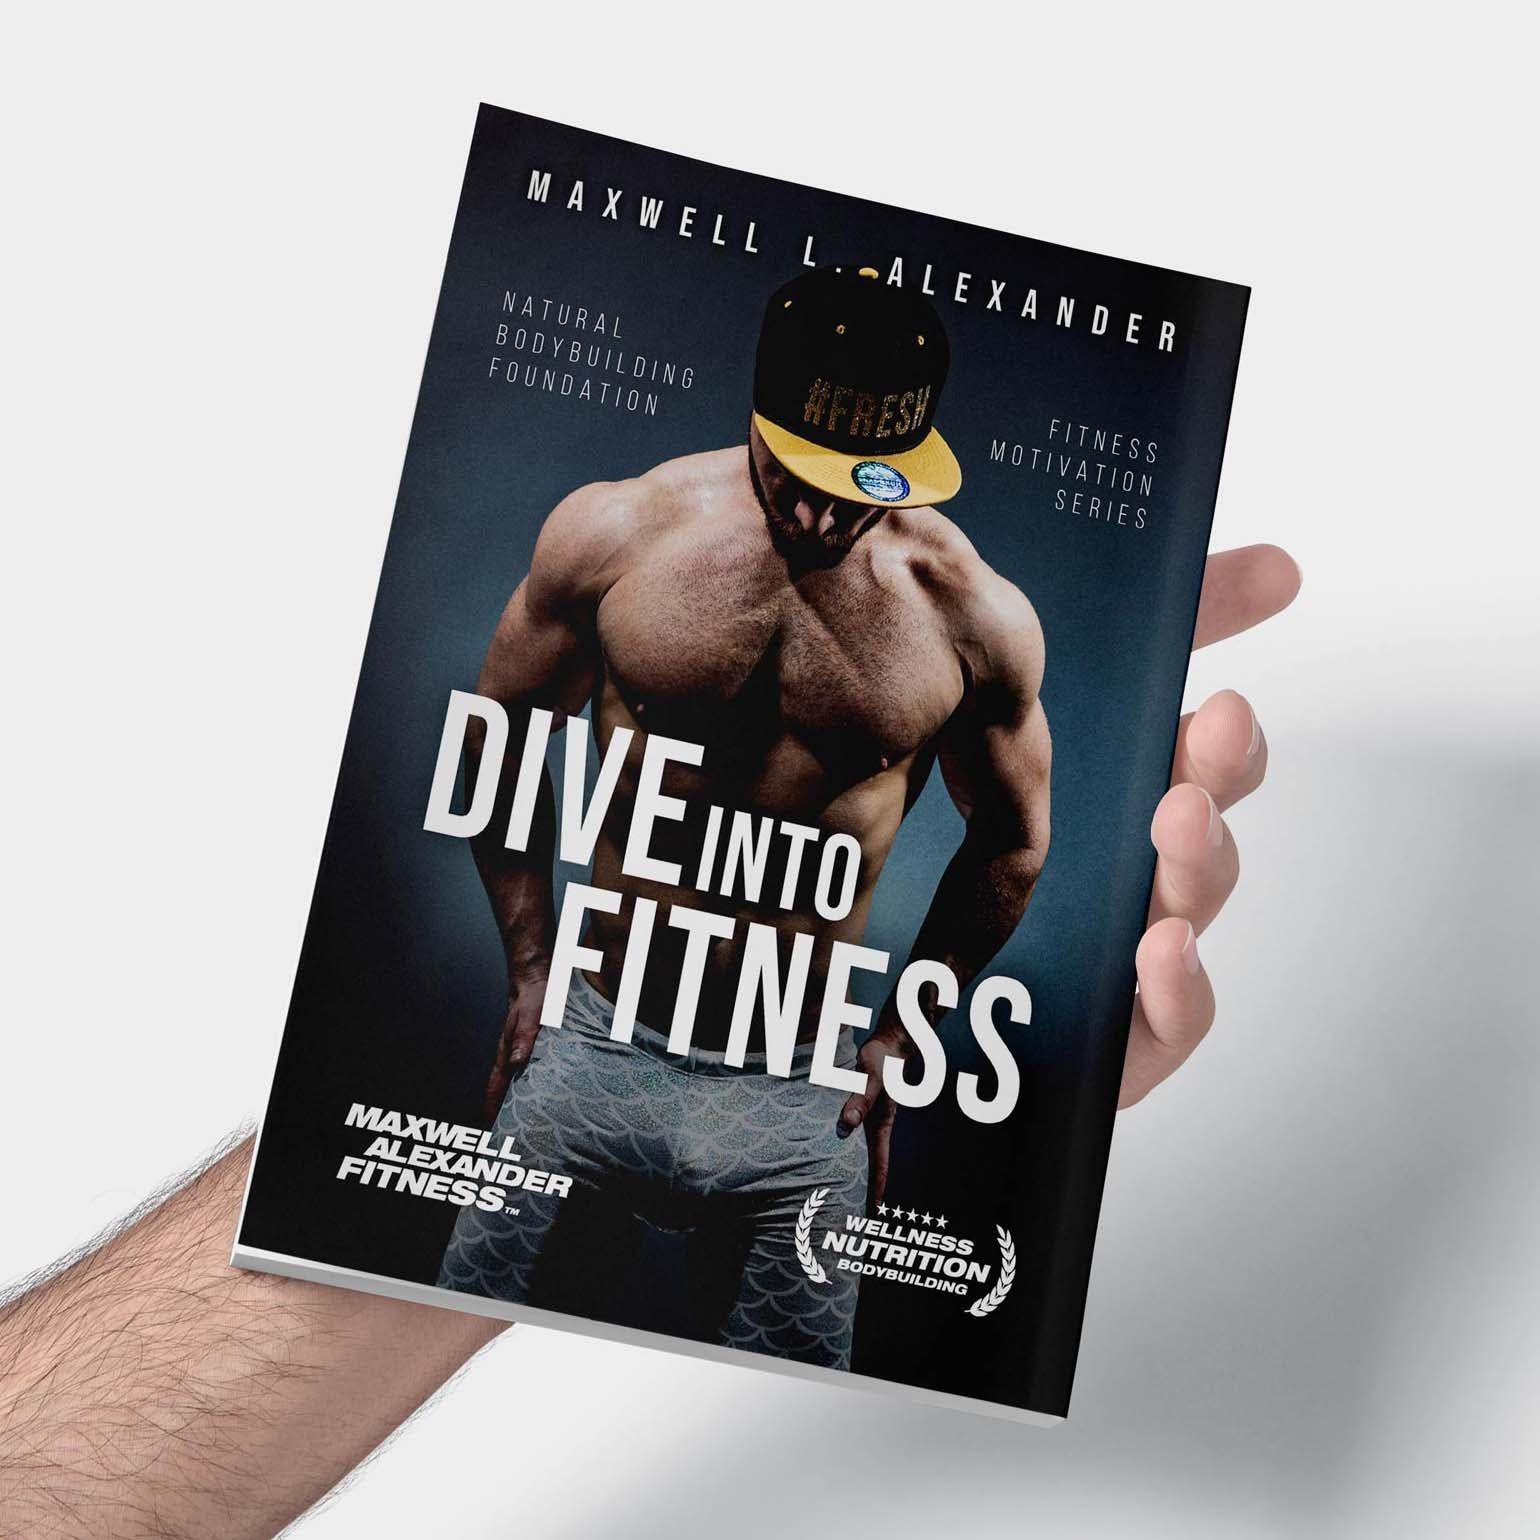 Dive Into Fitness with Coach Maxwell Alexander – Fitness Motivation Series